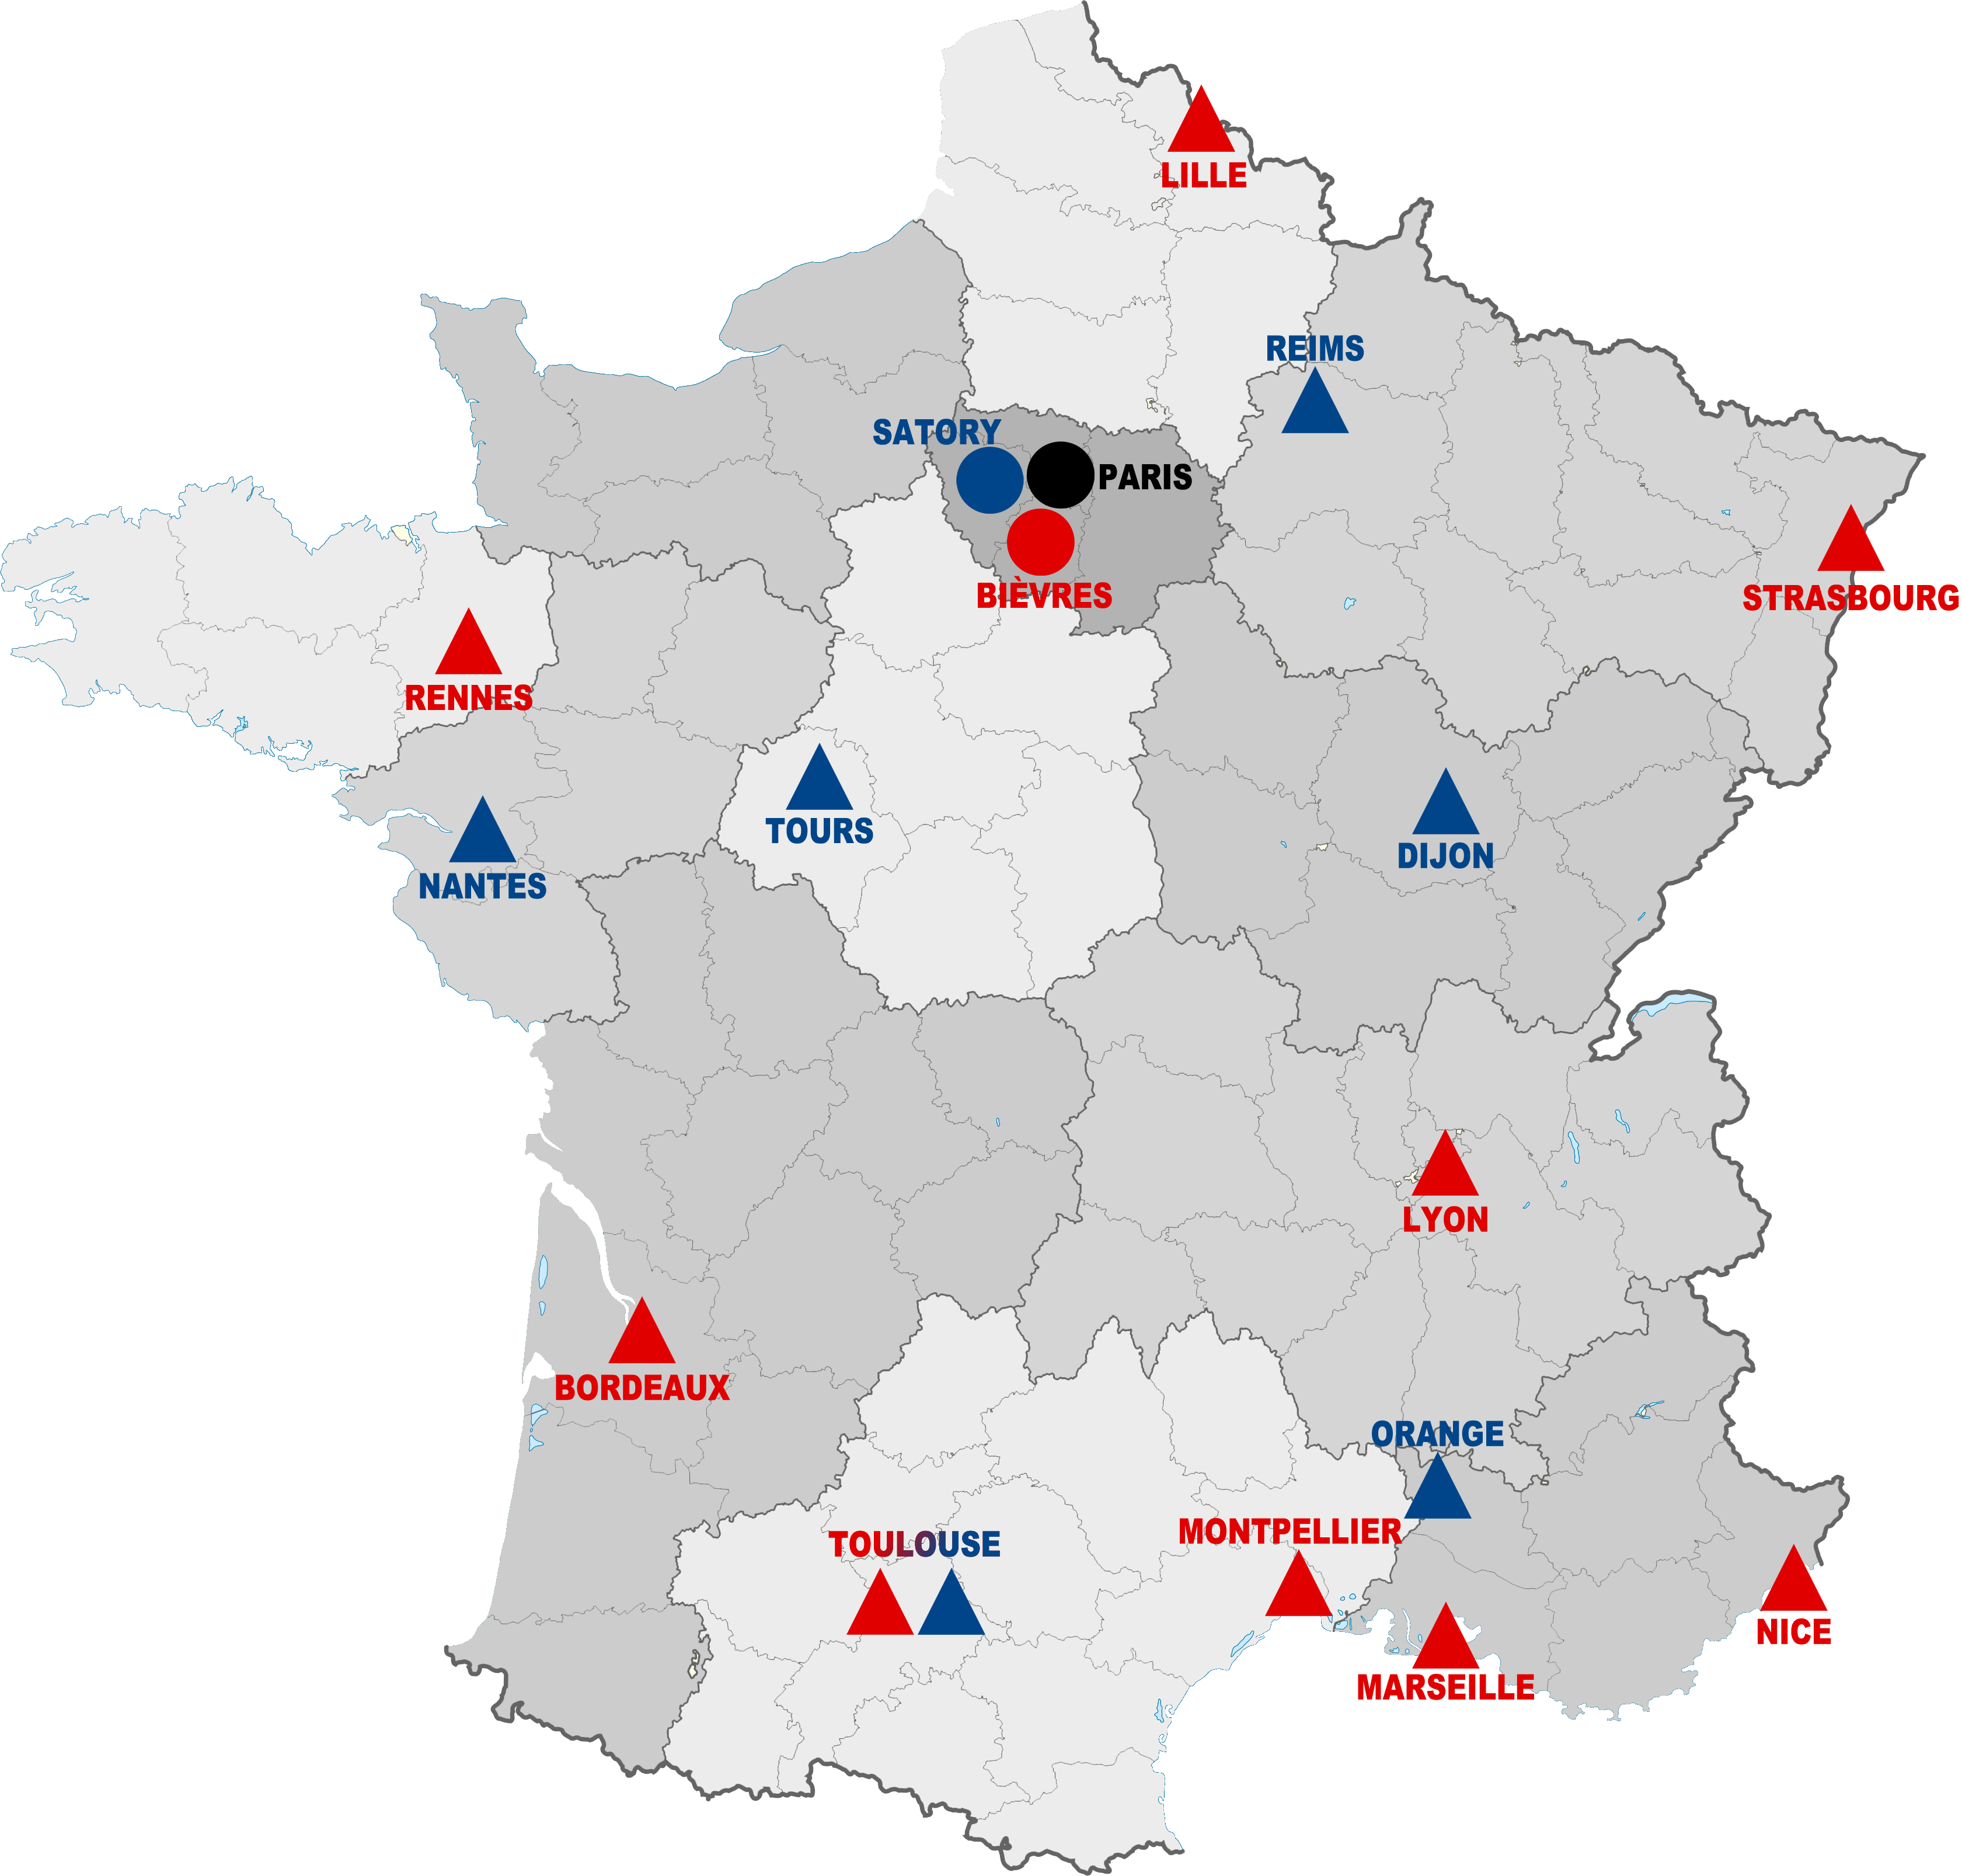 Montpellier Map Of France.File France Map French Intervention Force Police Gendarmerie 2016